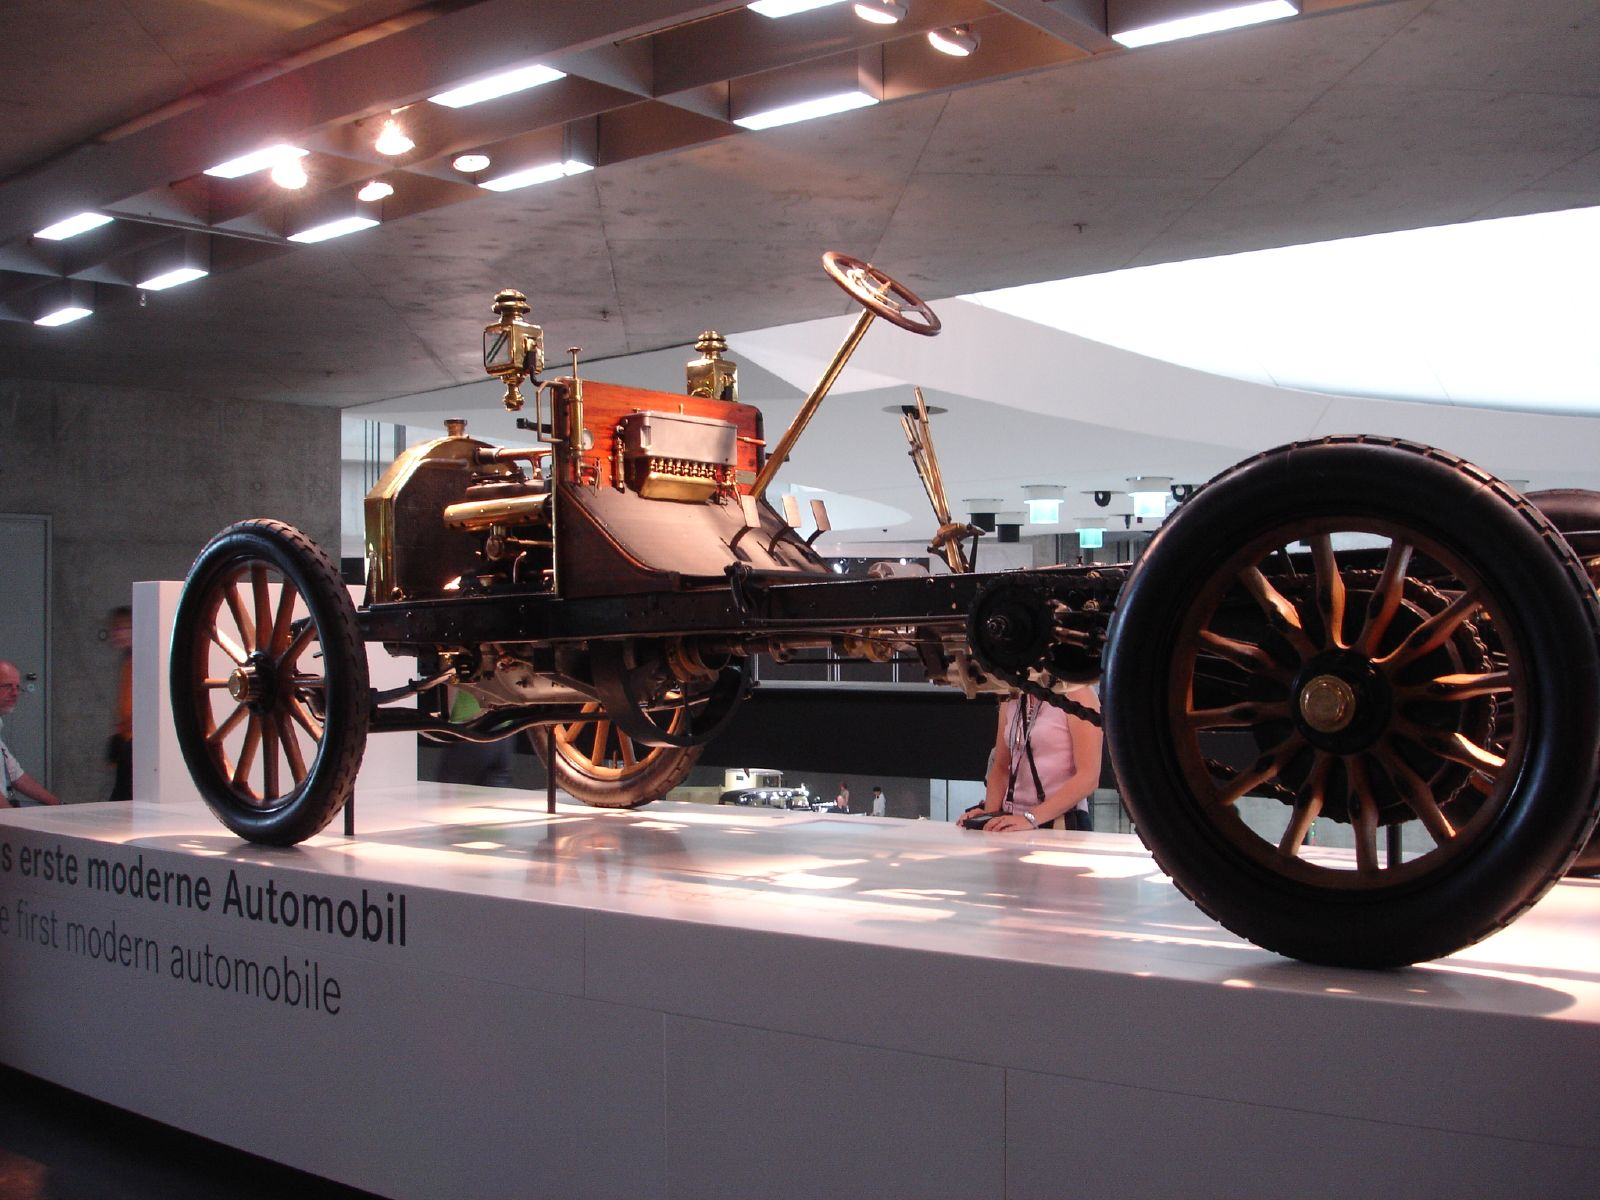 File:First Modern Automobile.jpg - Wikimedia Commons